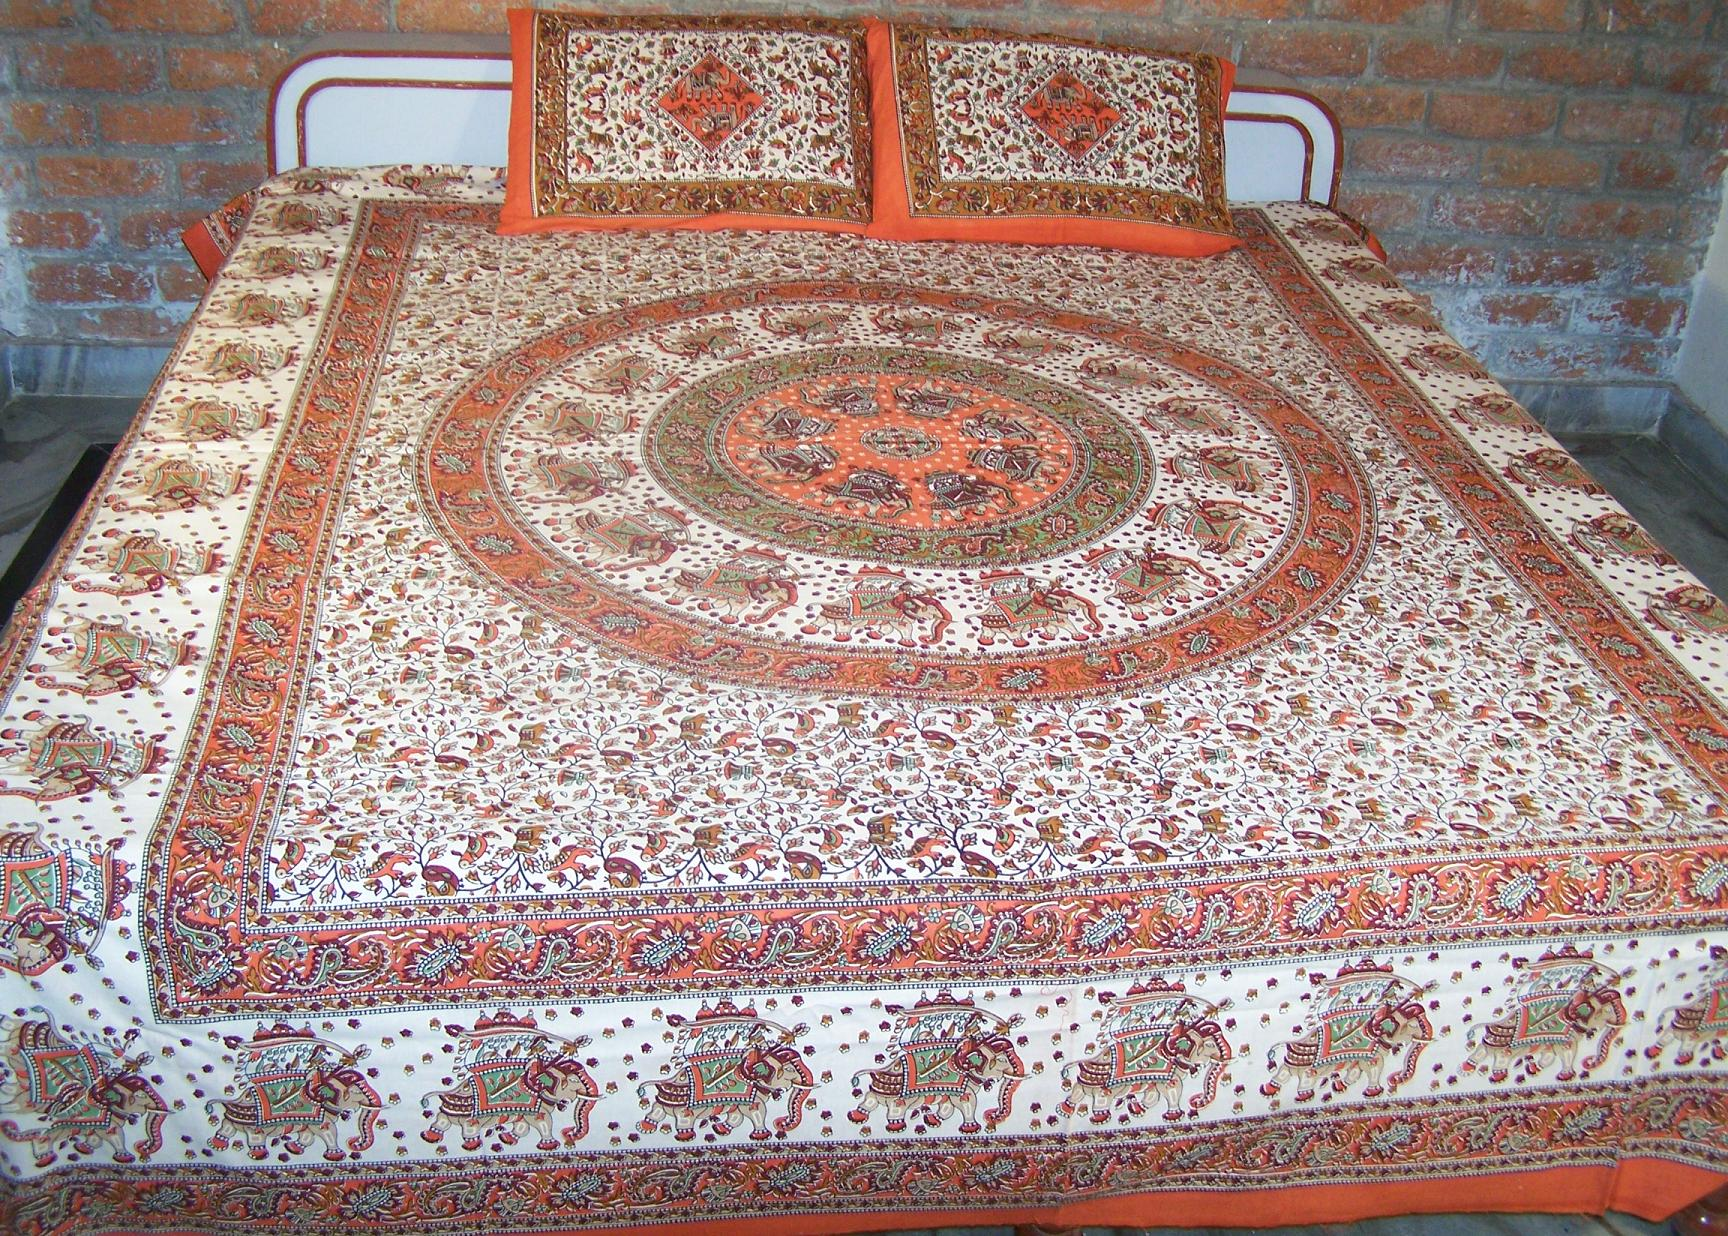 Bed sheet or bead spread from india